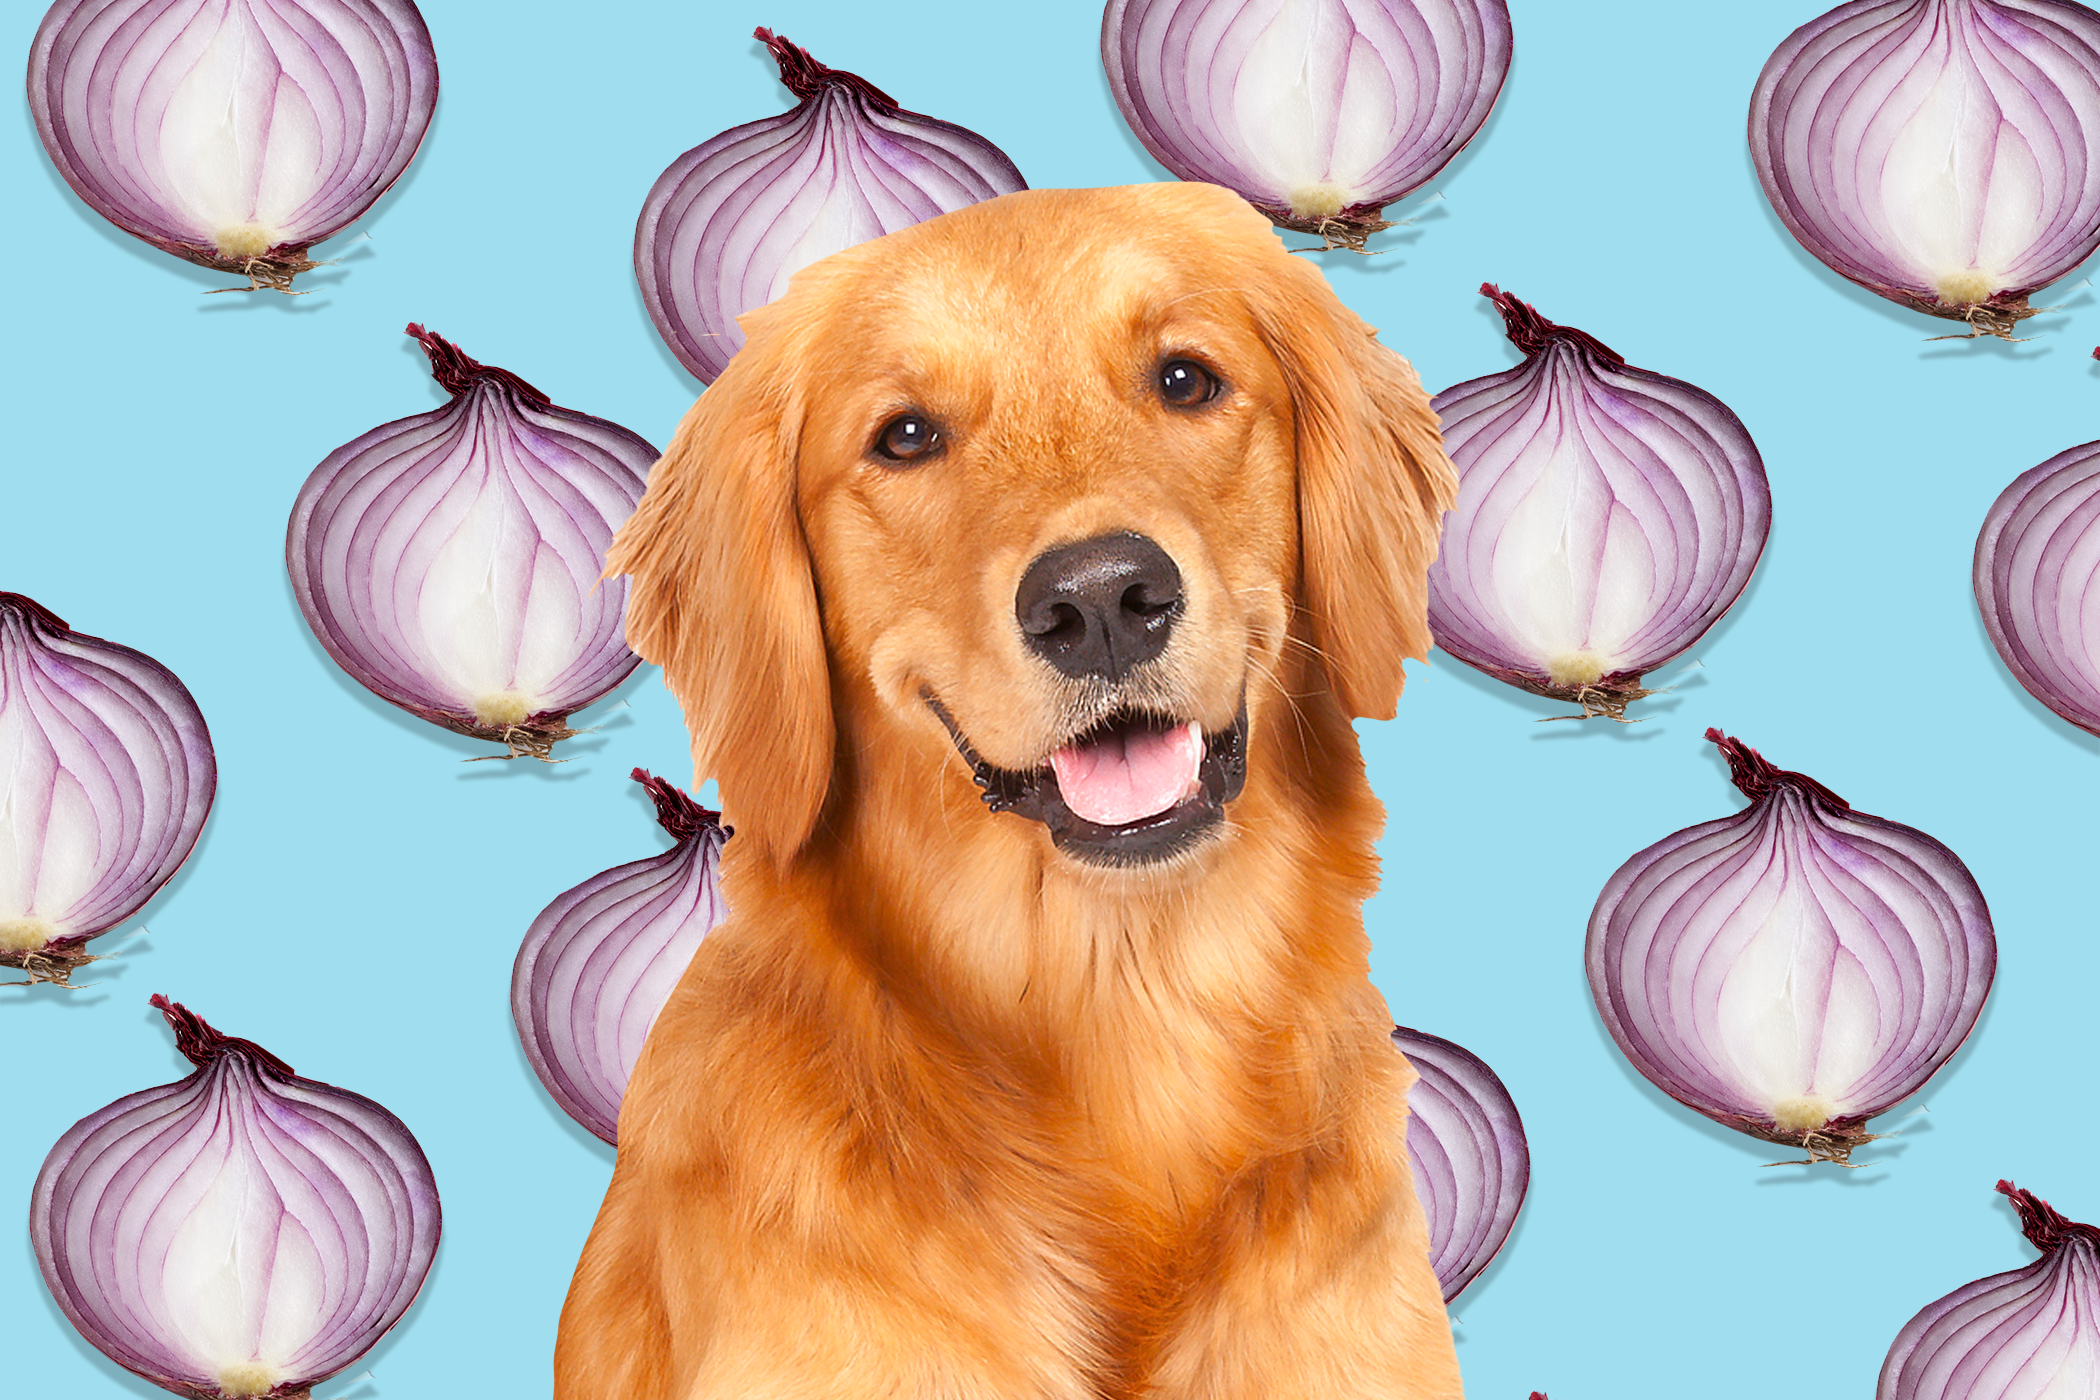 golden retriever in front of red onions repeating on a light blue background